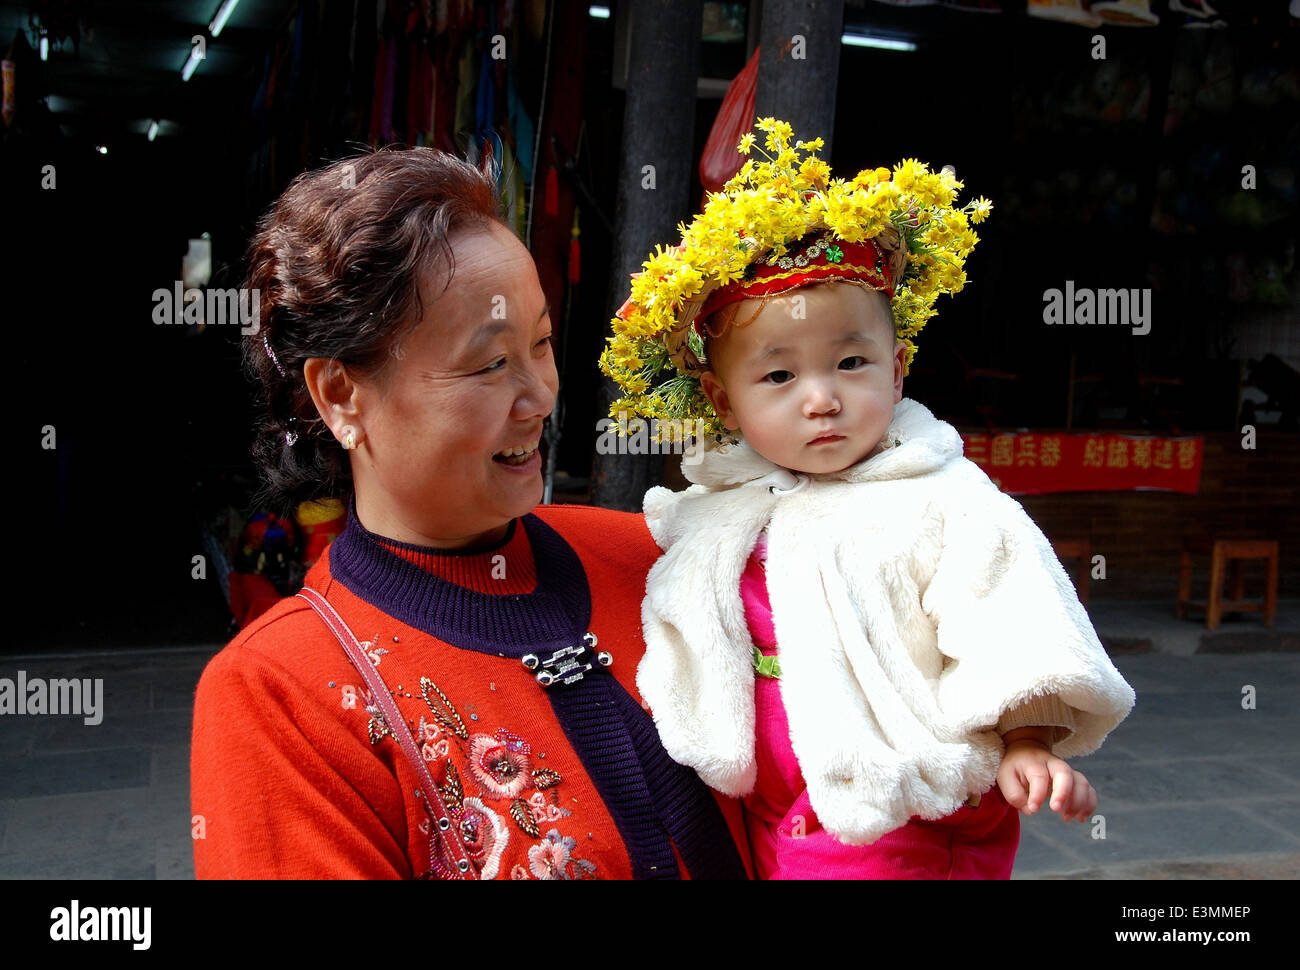 HUANG LONG XI, CHINA: GRANDMA WITH HER GRANDSON WHO WEARS A TRADITIONAL  FLORAL WREATH HAT - Stock Image